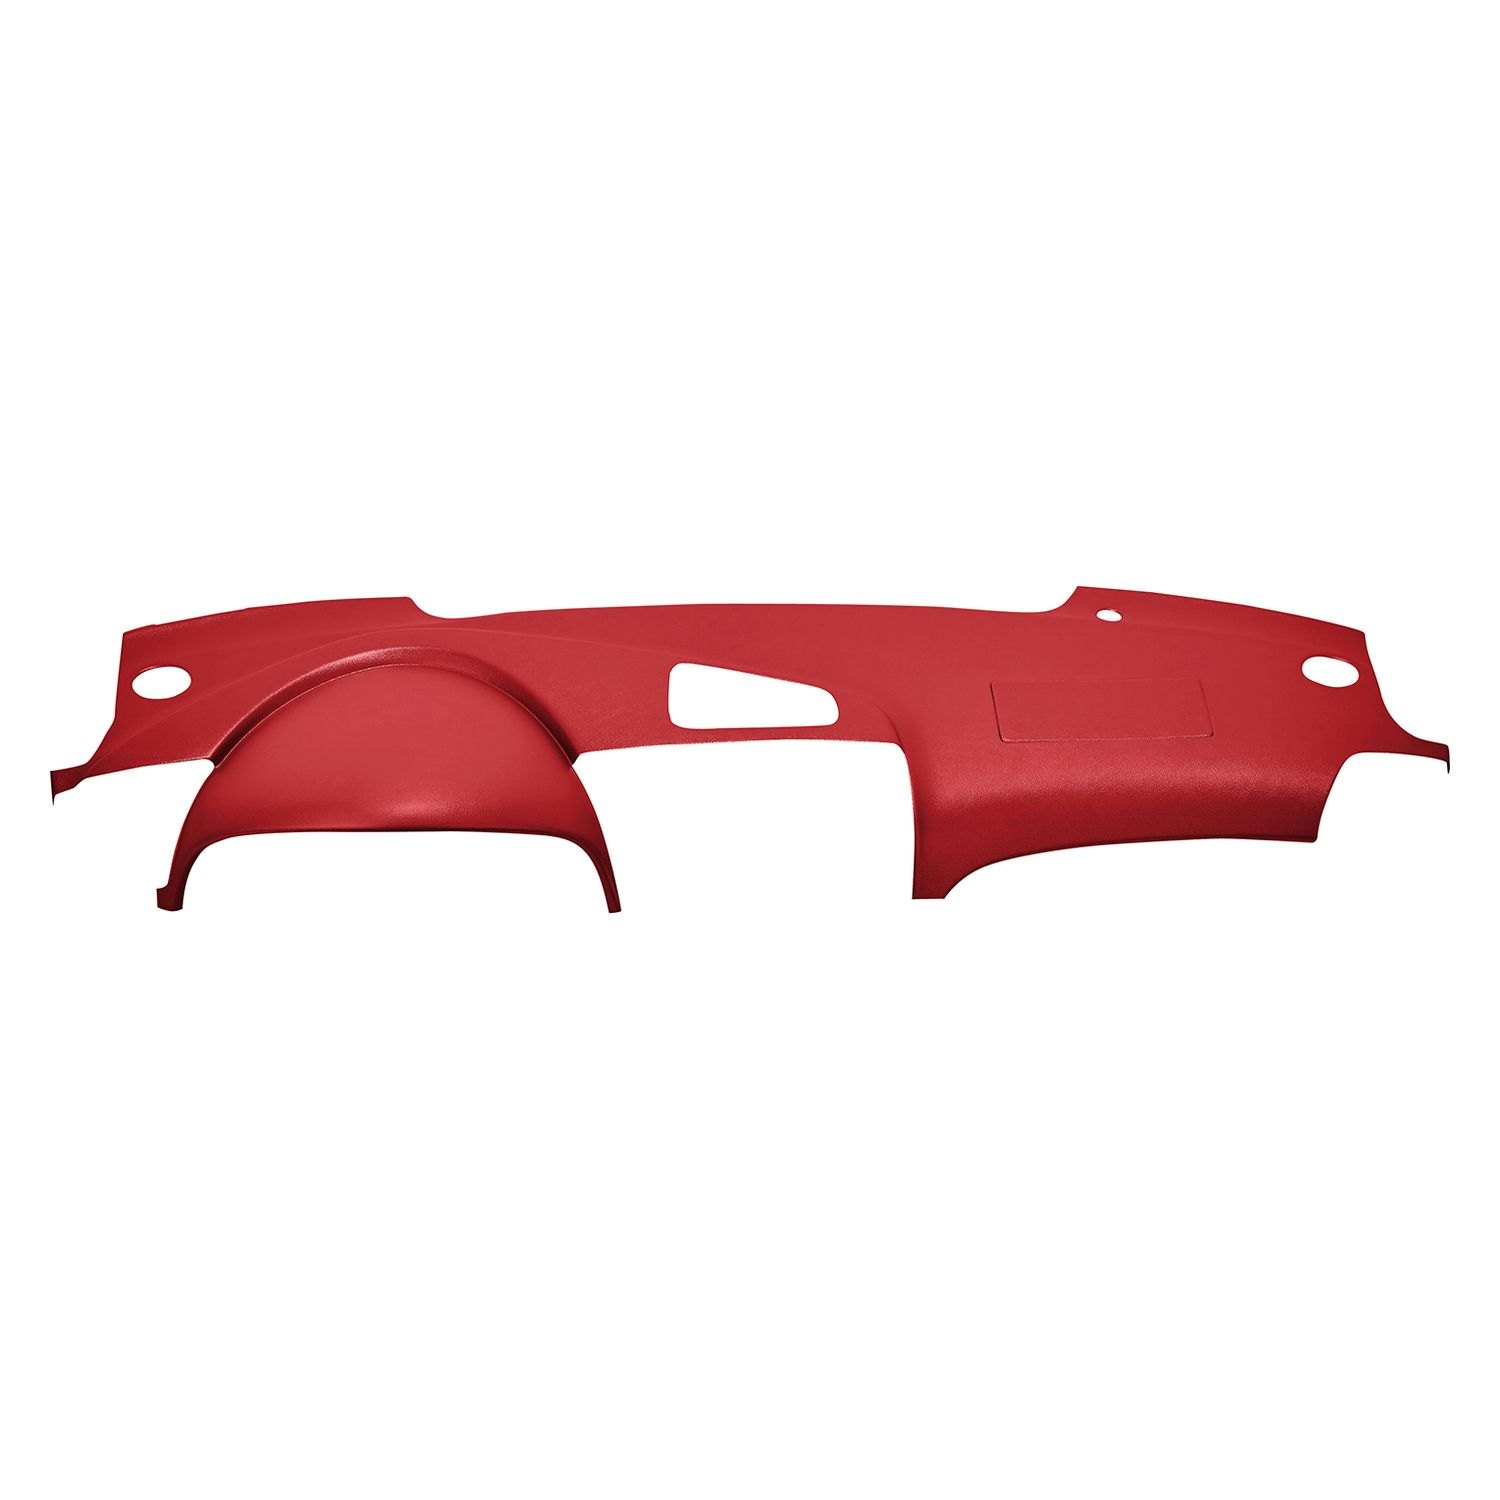 For Acura TL 2004-2008 Coverlay 30-408LL-RD Red Dash Cover